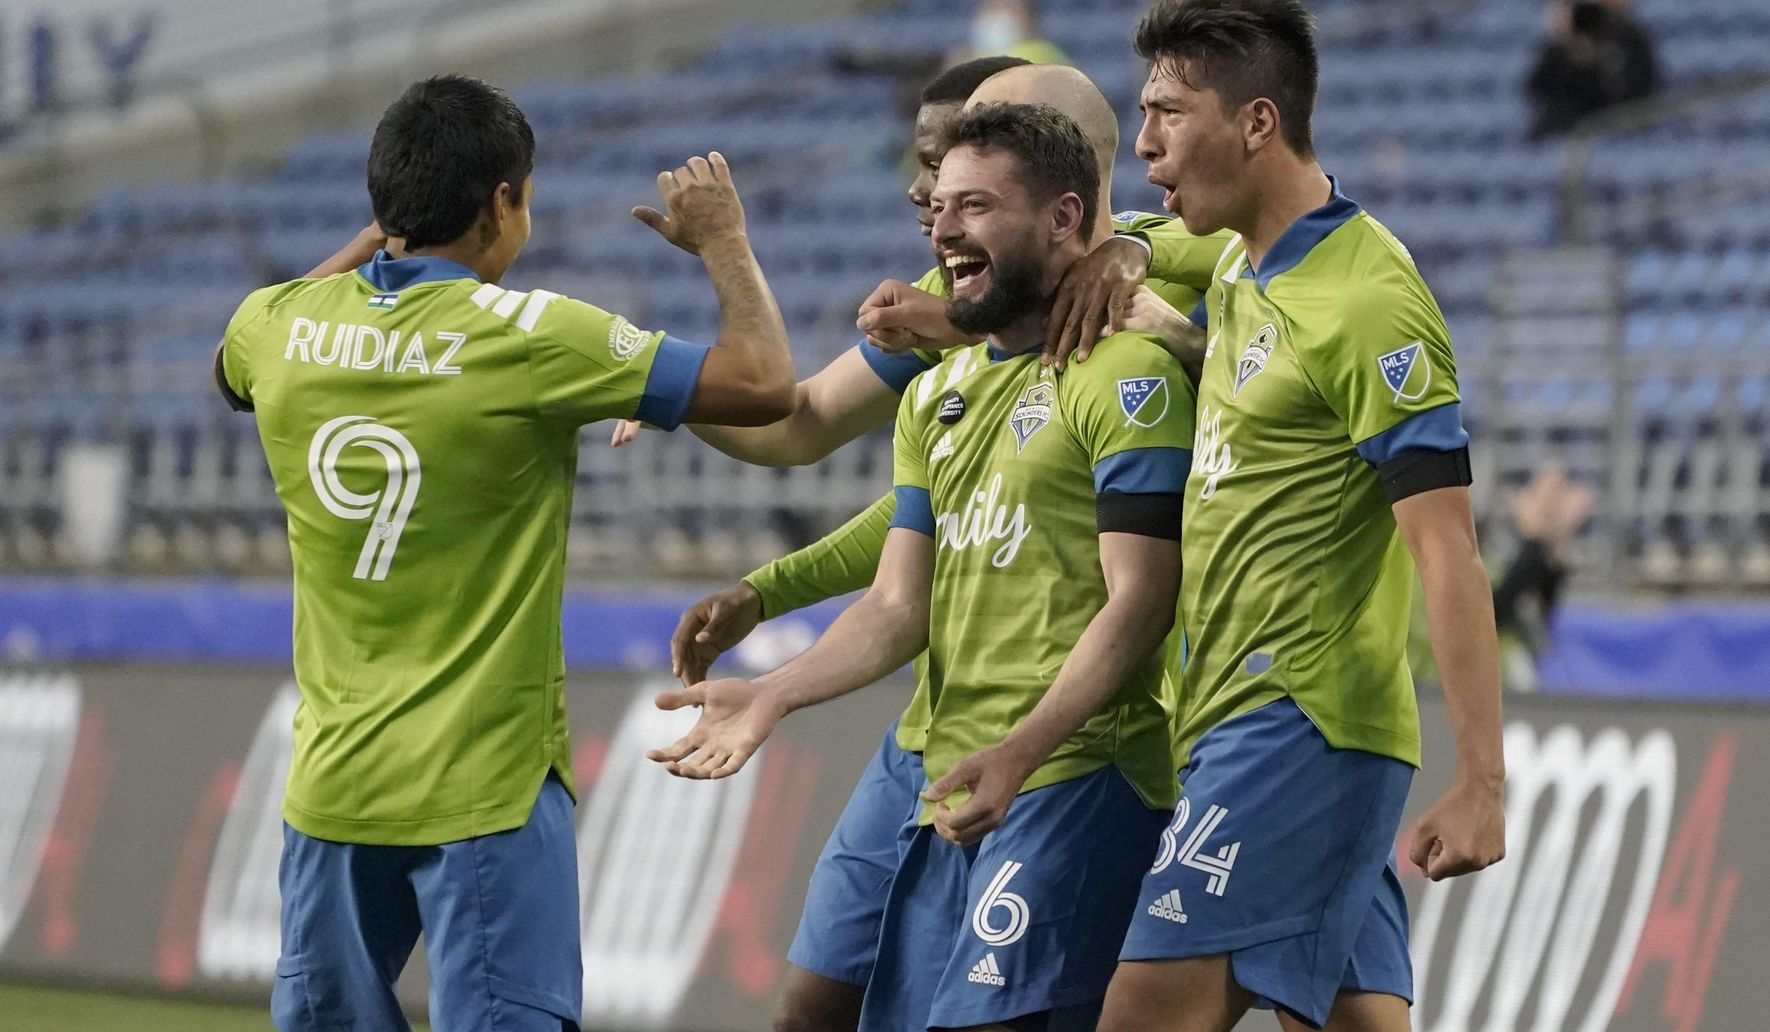 Mls_minnesota_united_sounders_soccer_09306_c0-149-3552-2219_s1770x1032